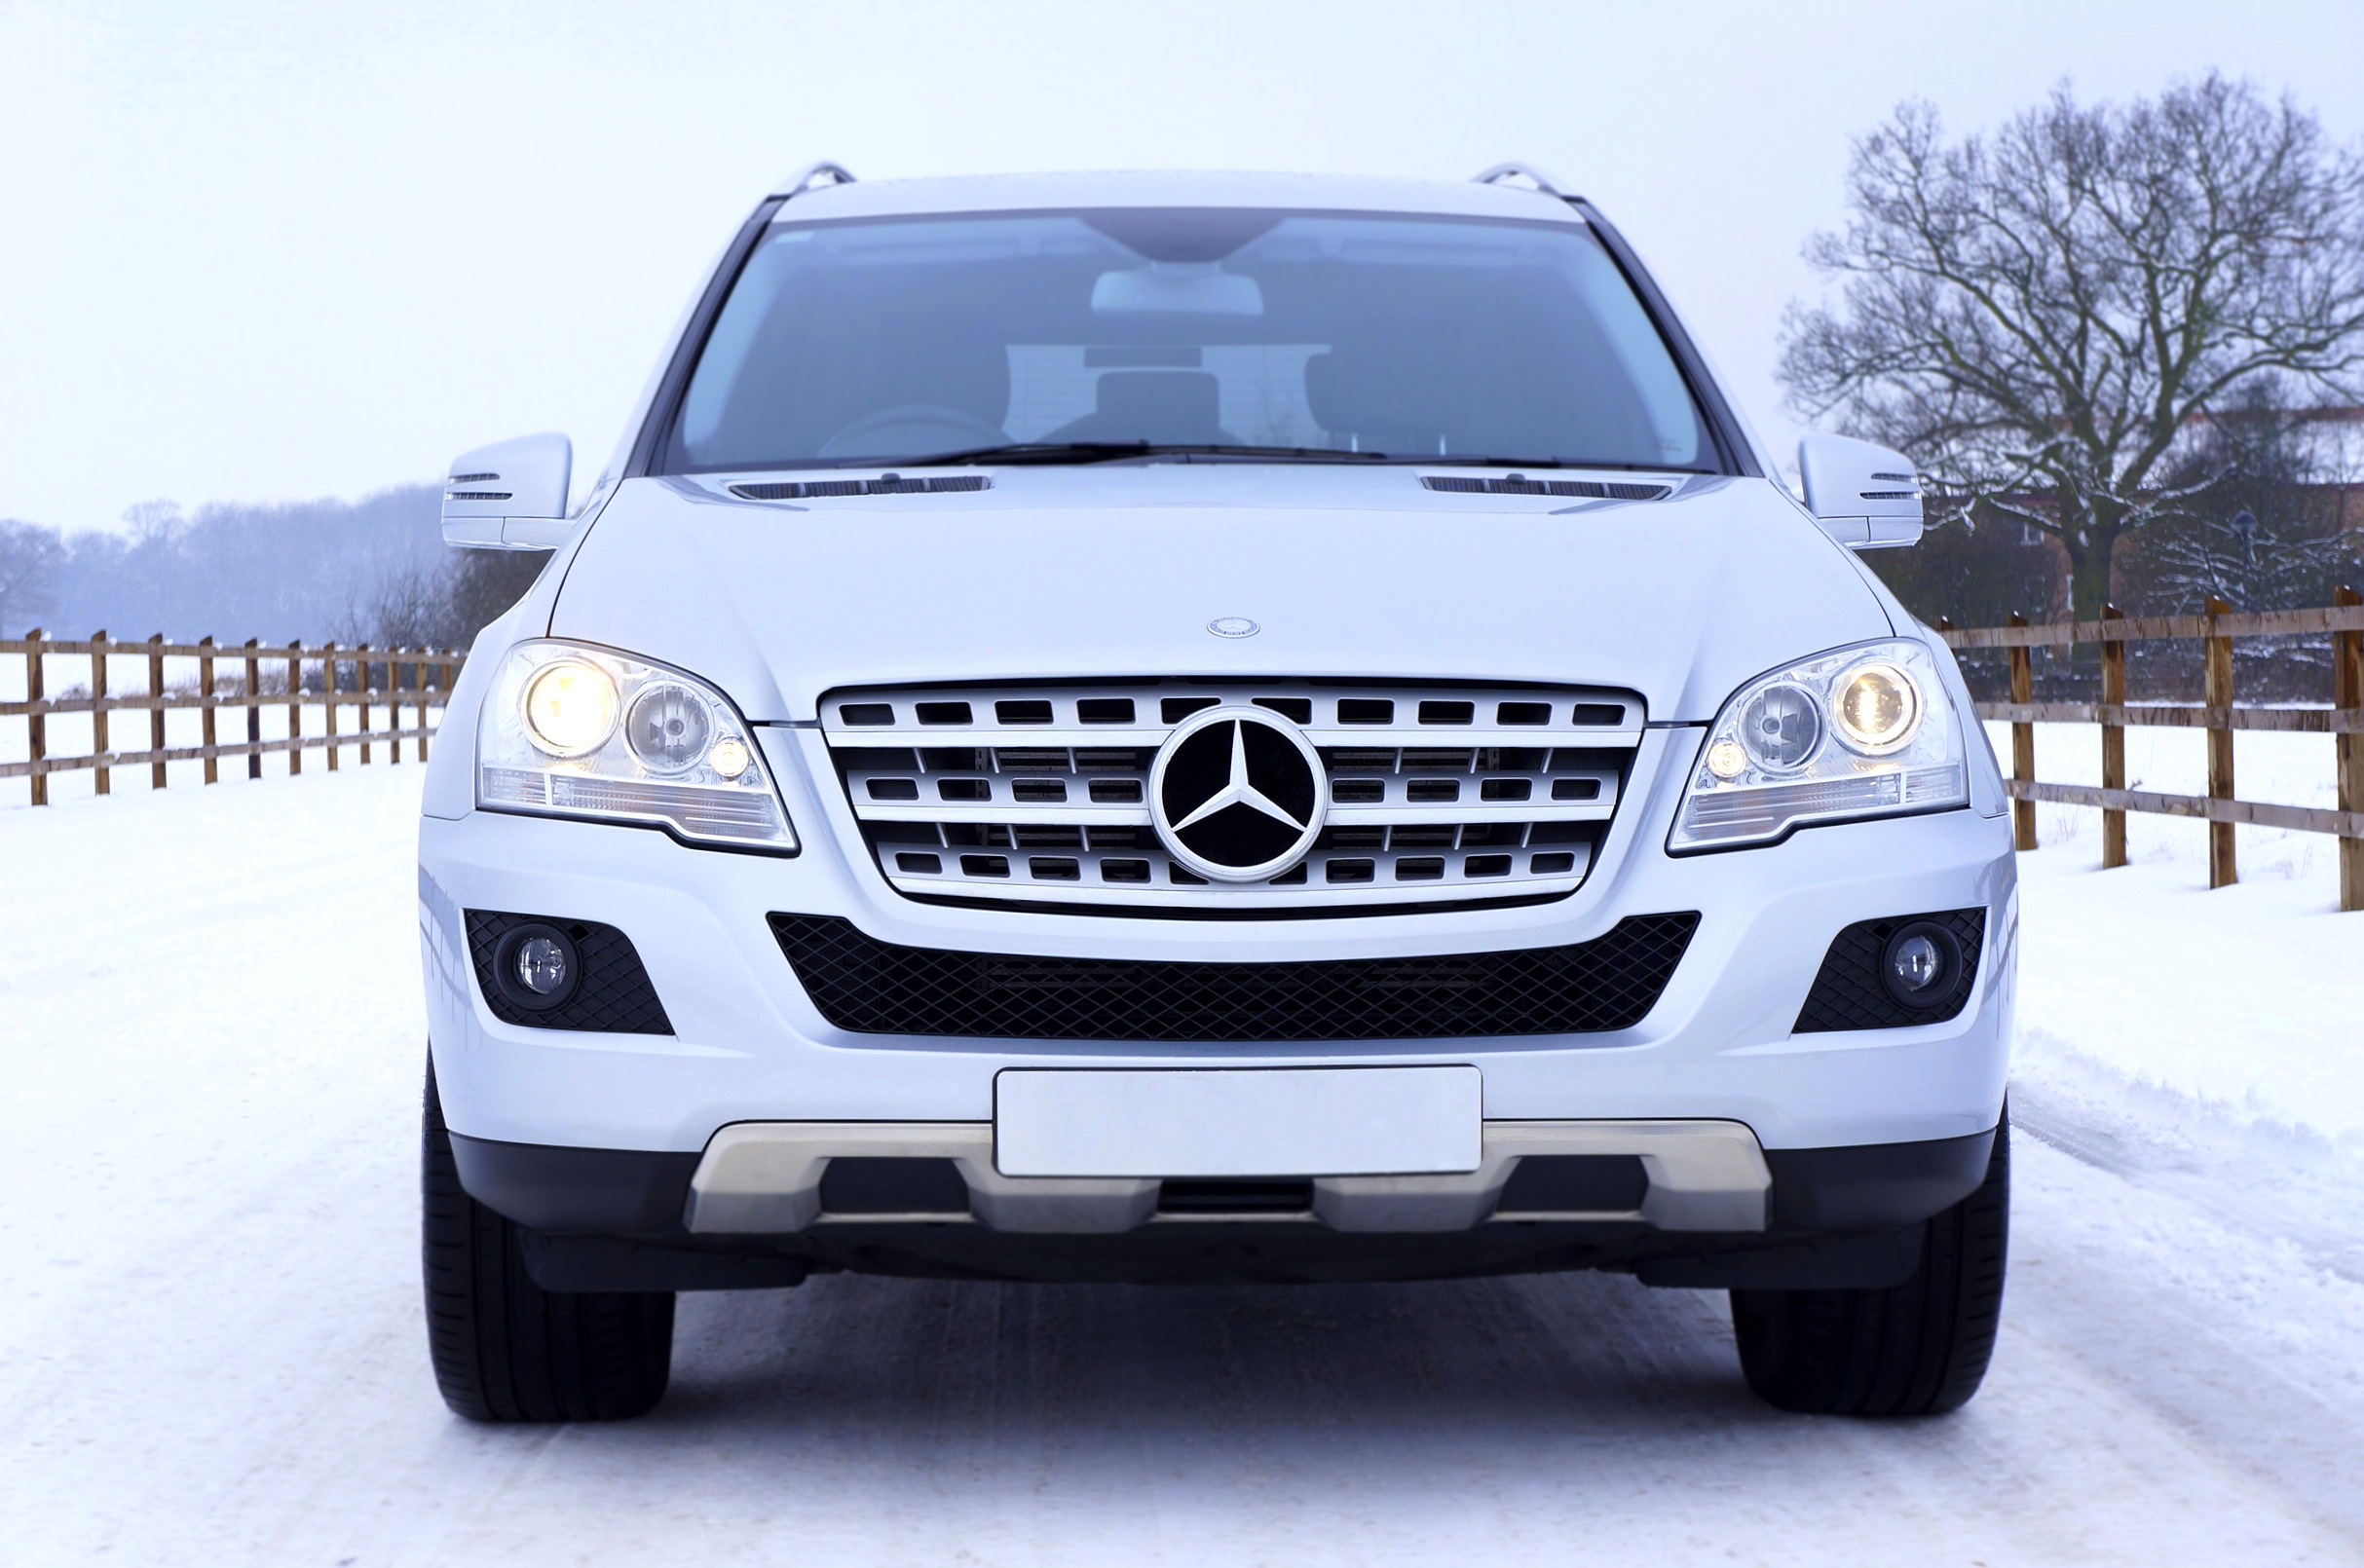 Best Tires For Snow >> White Mercedes Benz Car on White Snow Covered Ground at Daytime · Free Stock Photo